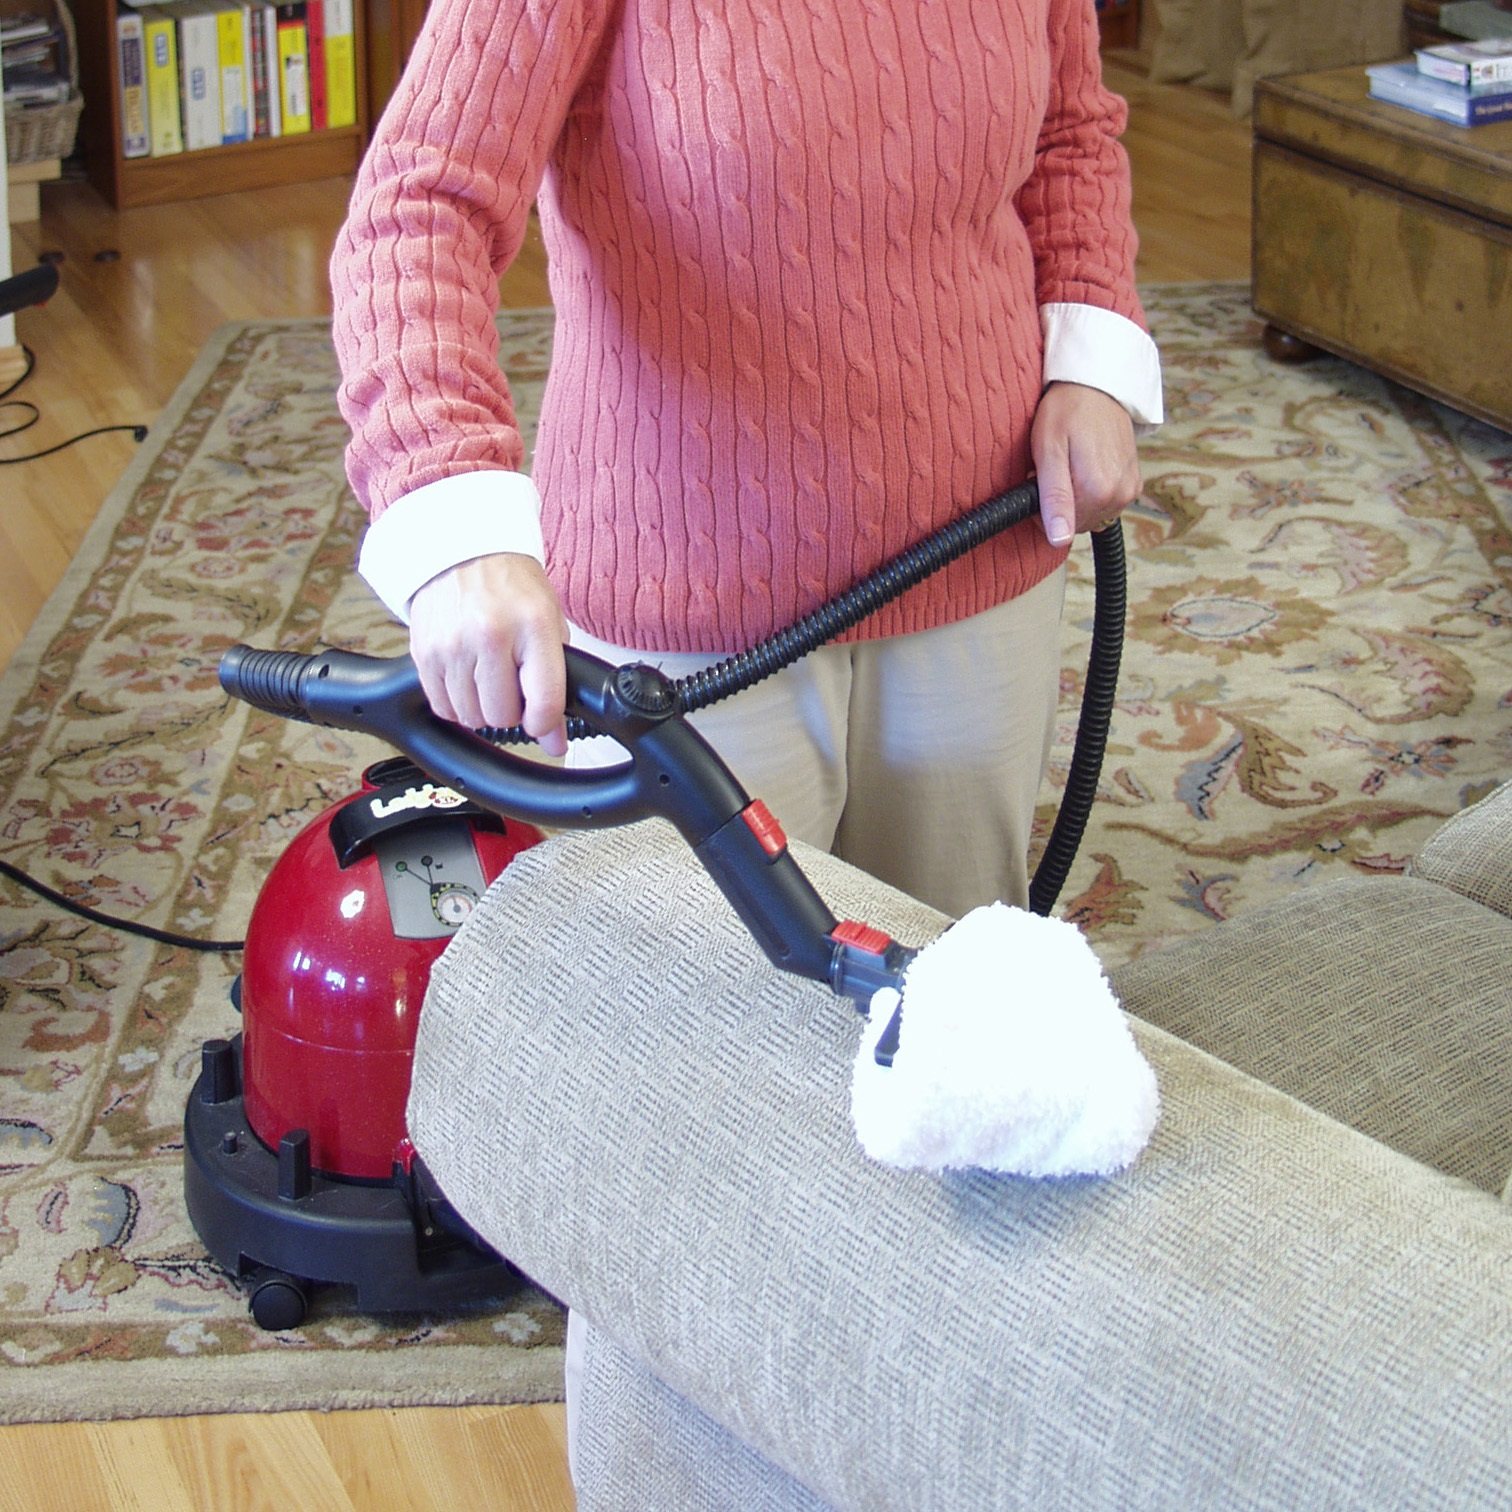 How Do Steam Cleaners Work